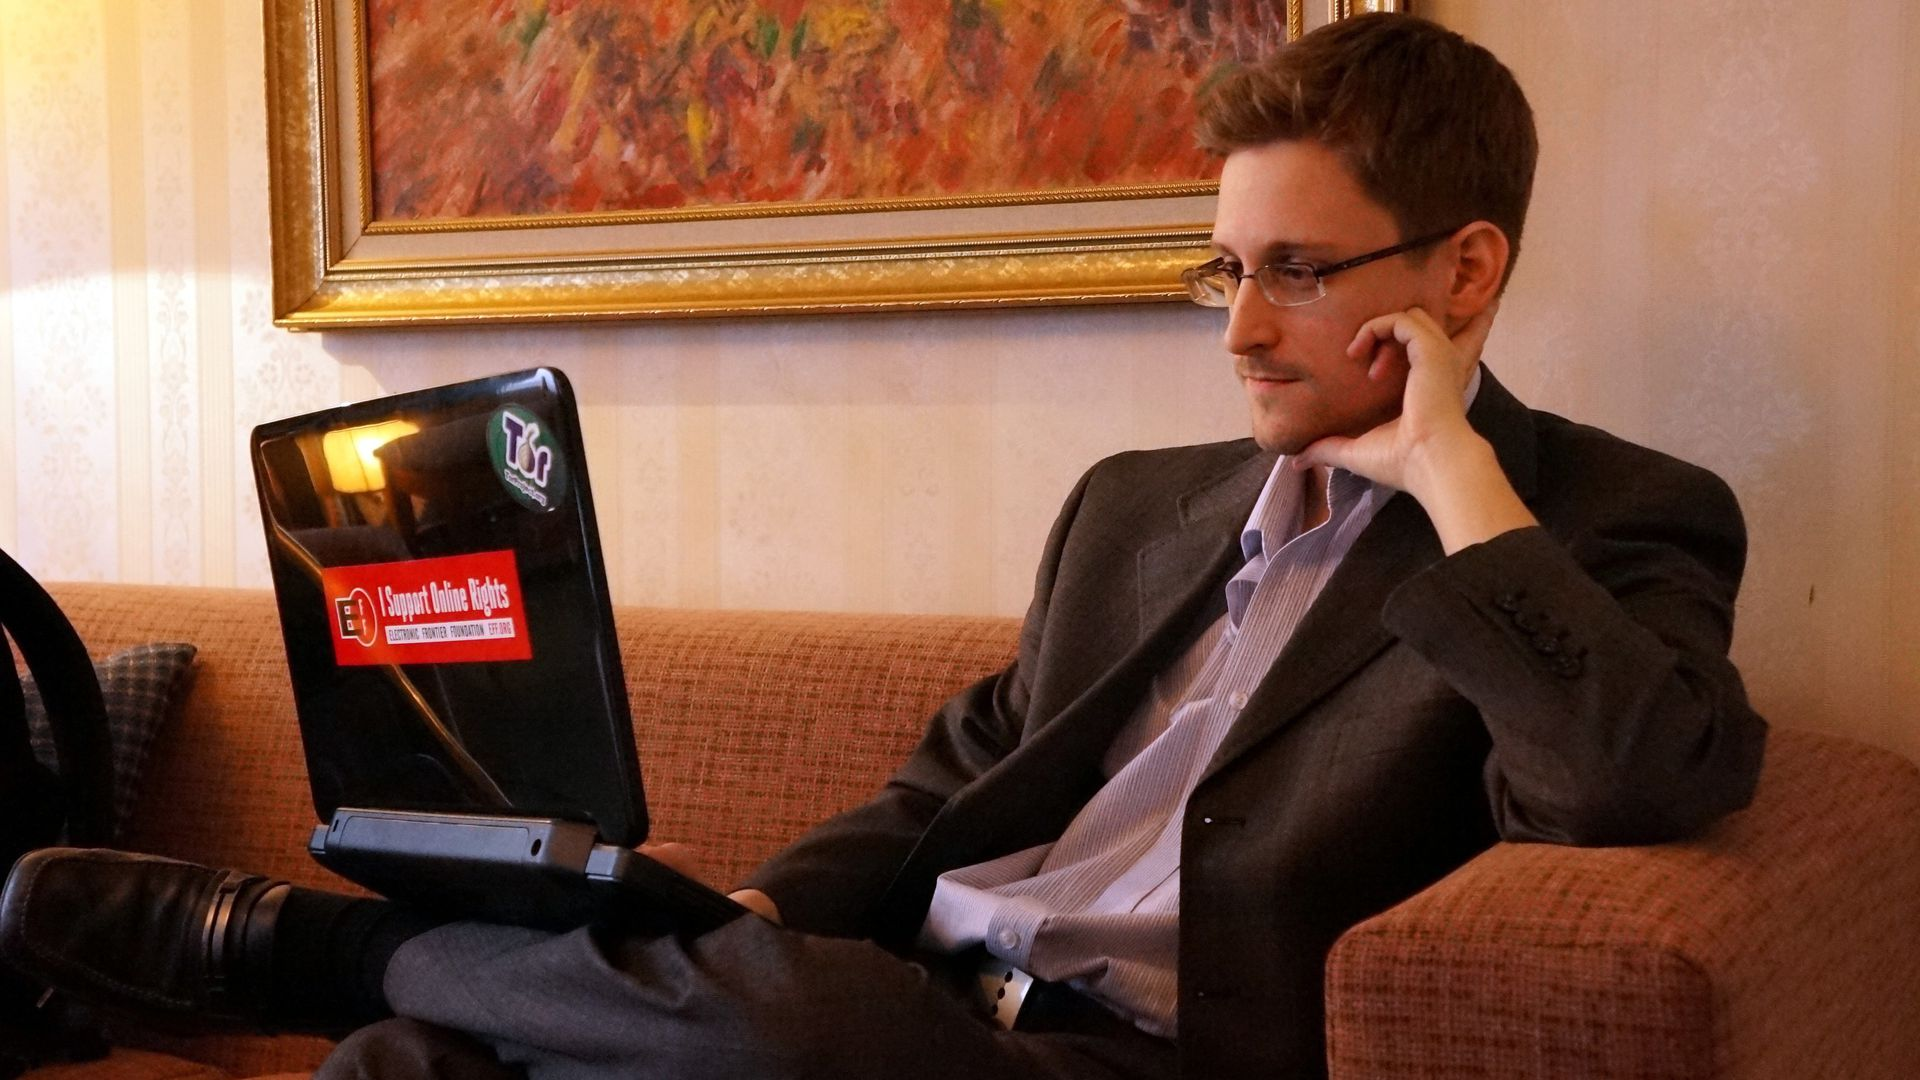 Snowden looking at a laptop.